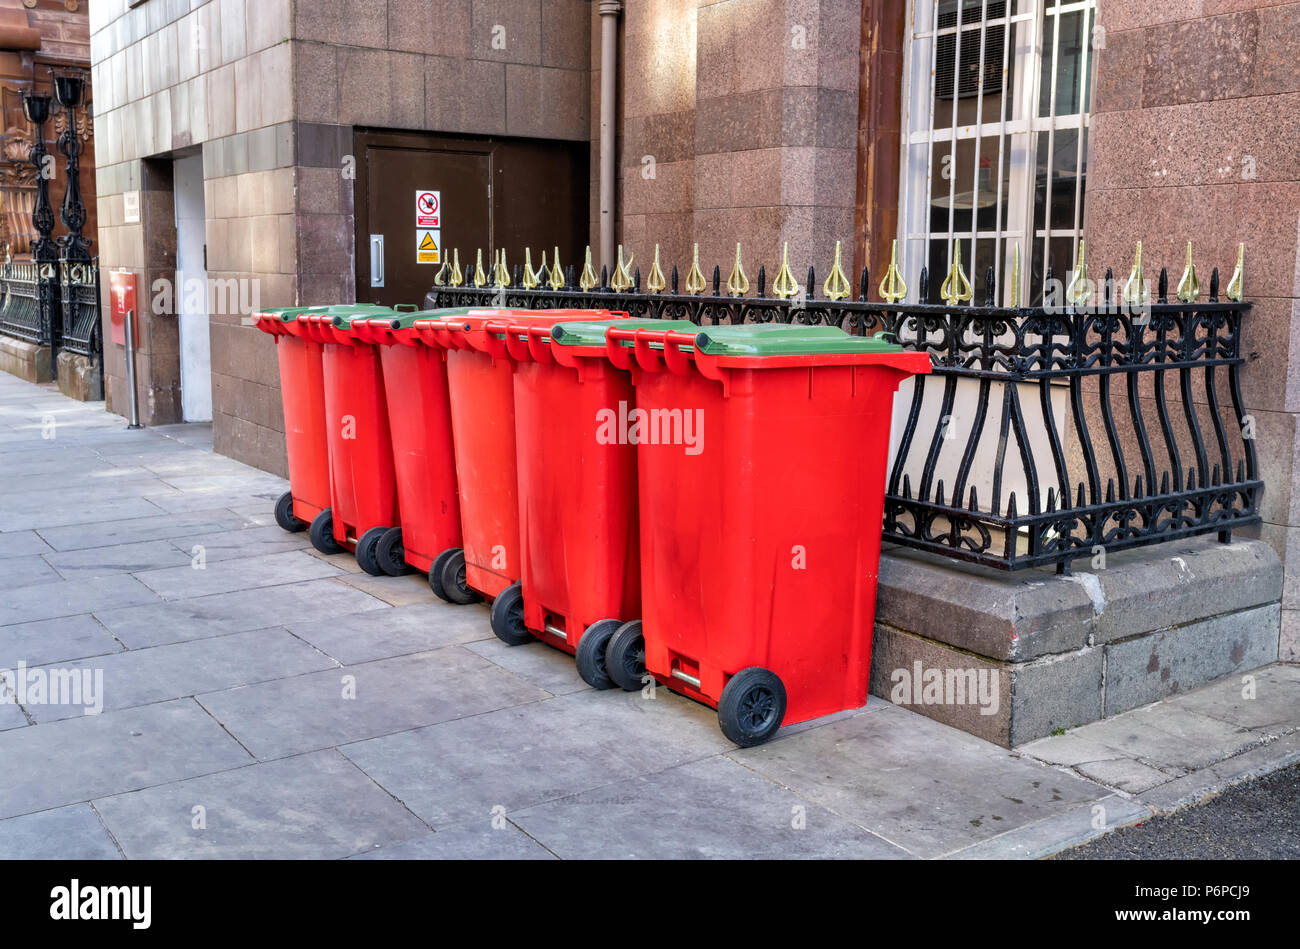 A row of 6 red and 5 green wheelie bins on the pavement in a street in Manchester City Centre, UK - Stock Image